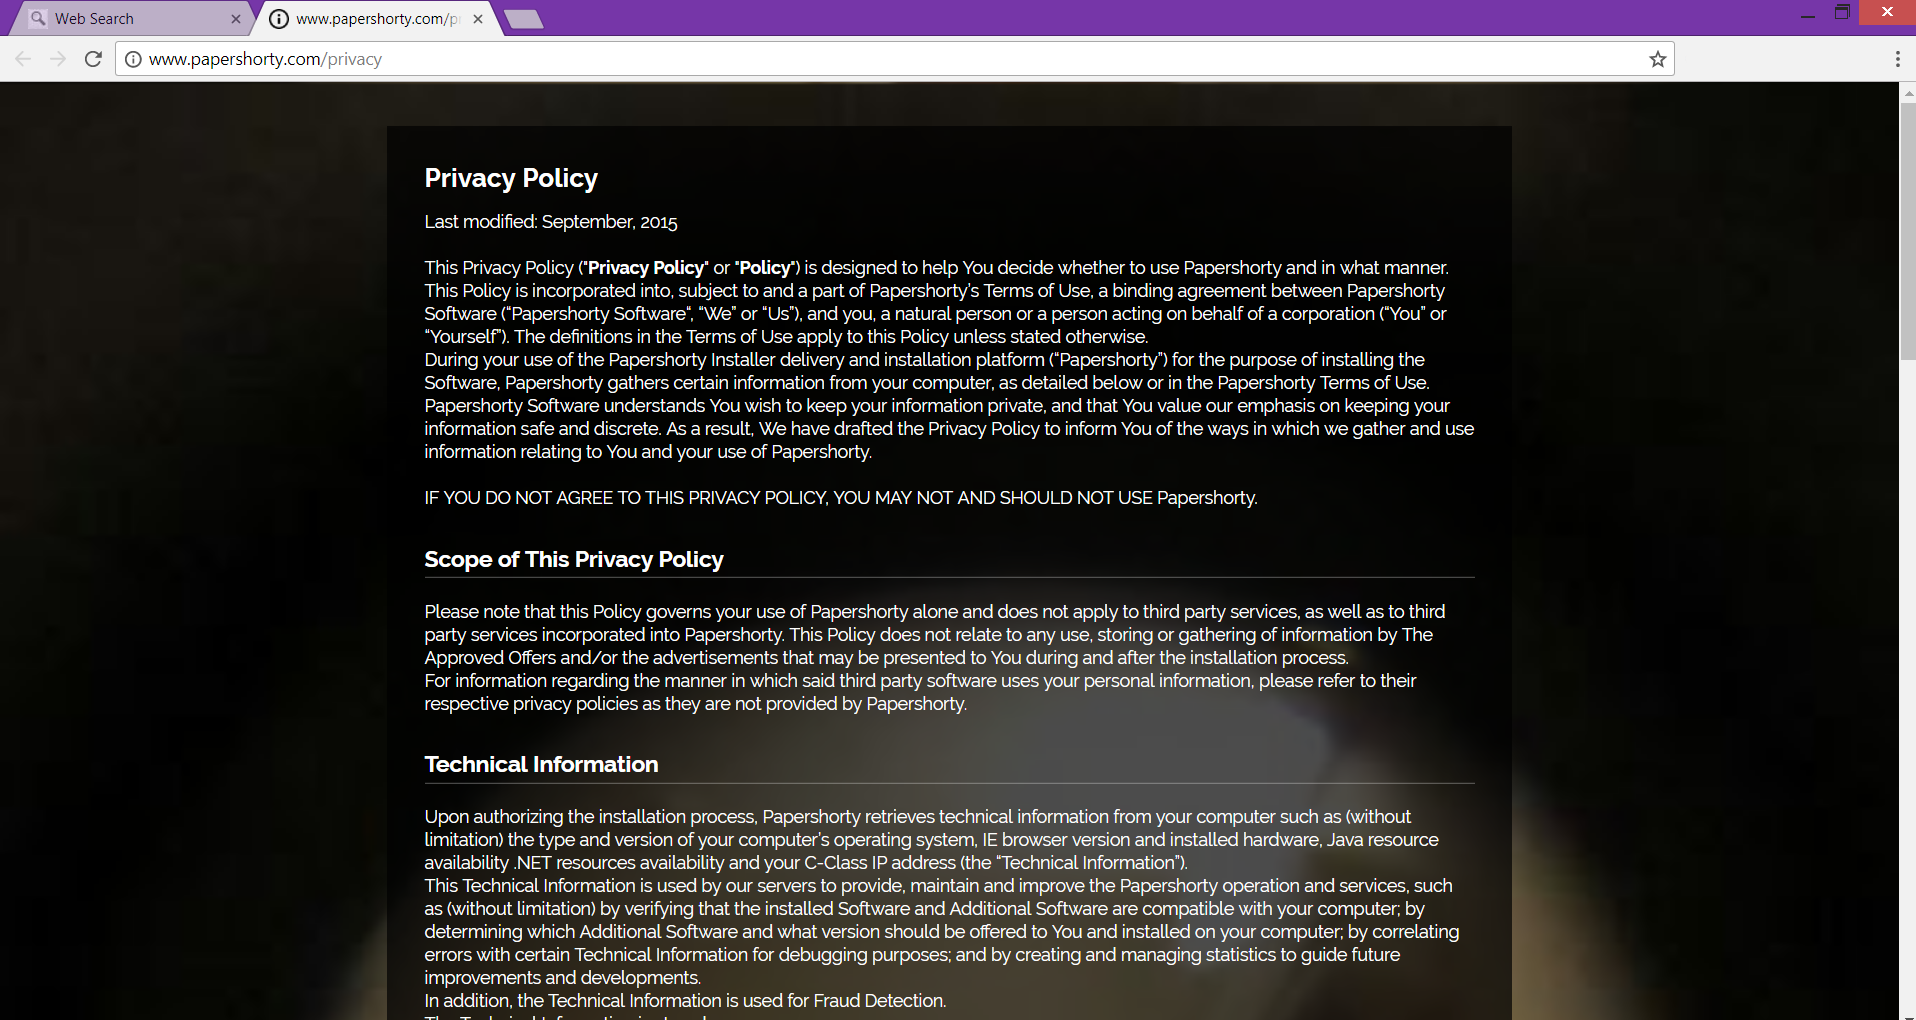 Search.papershorty.com privacy policy page